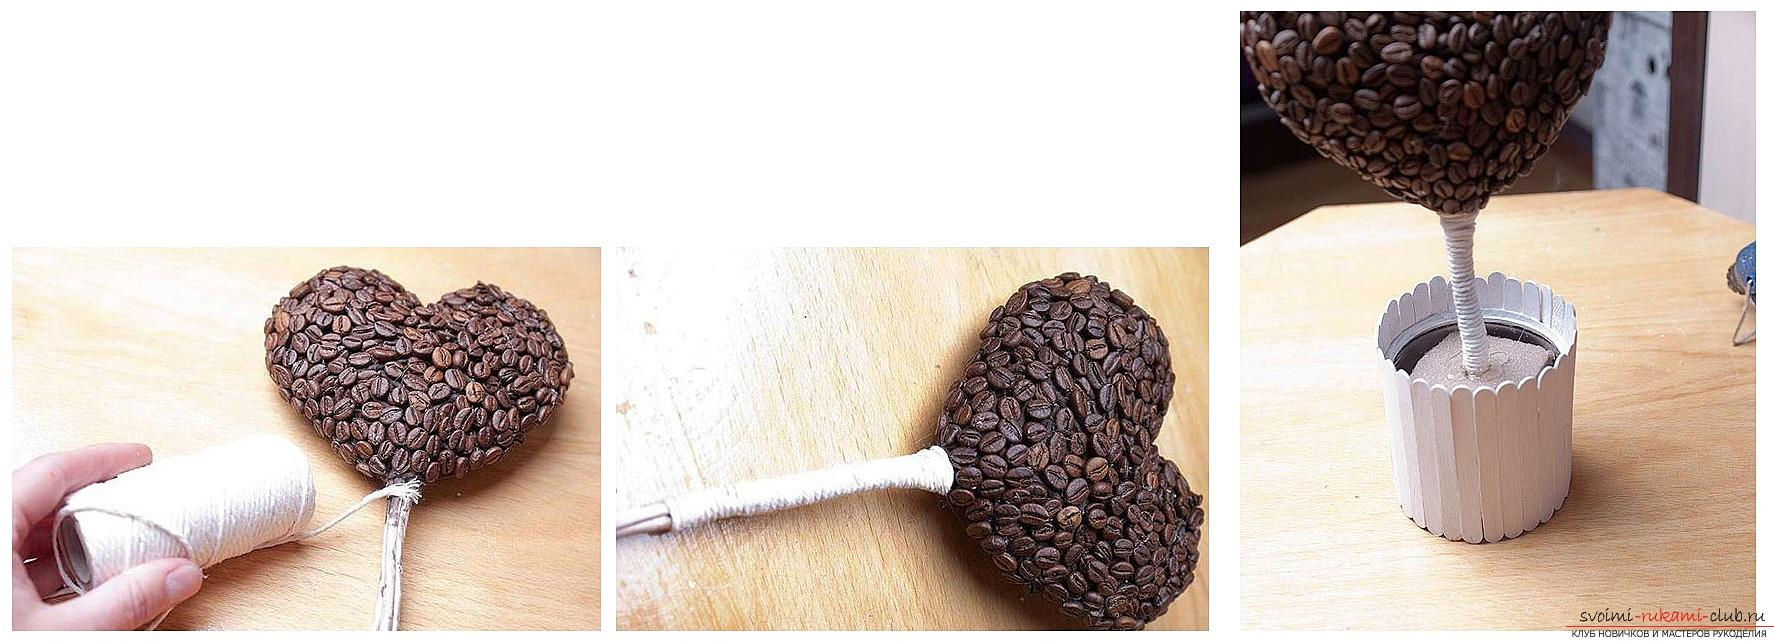 How to make a topiary yourself from coffee beans